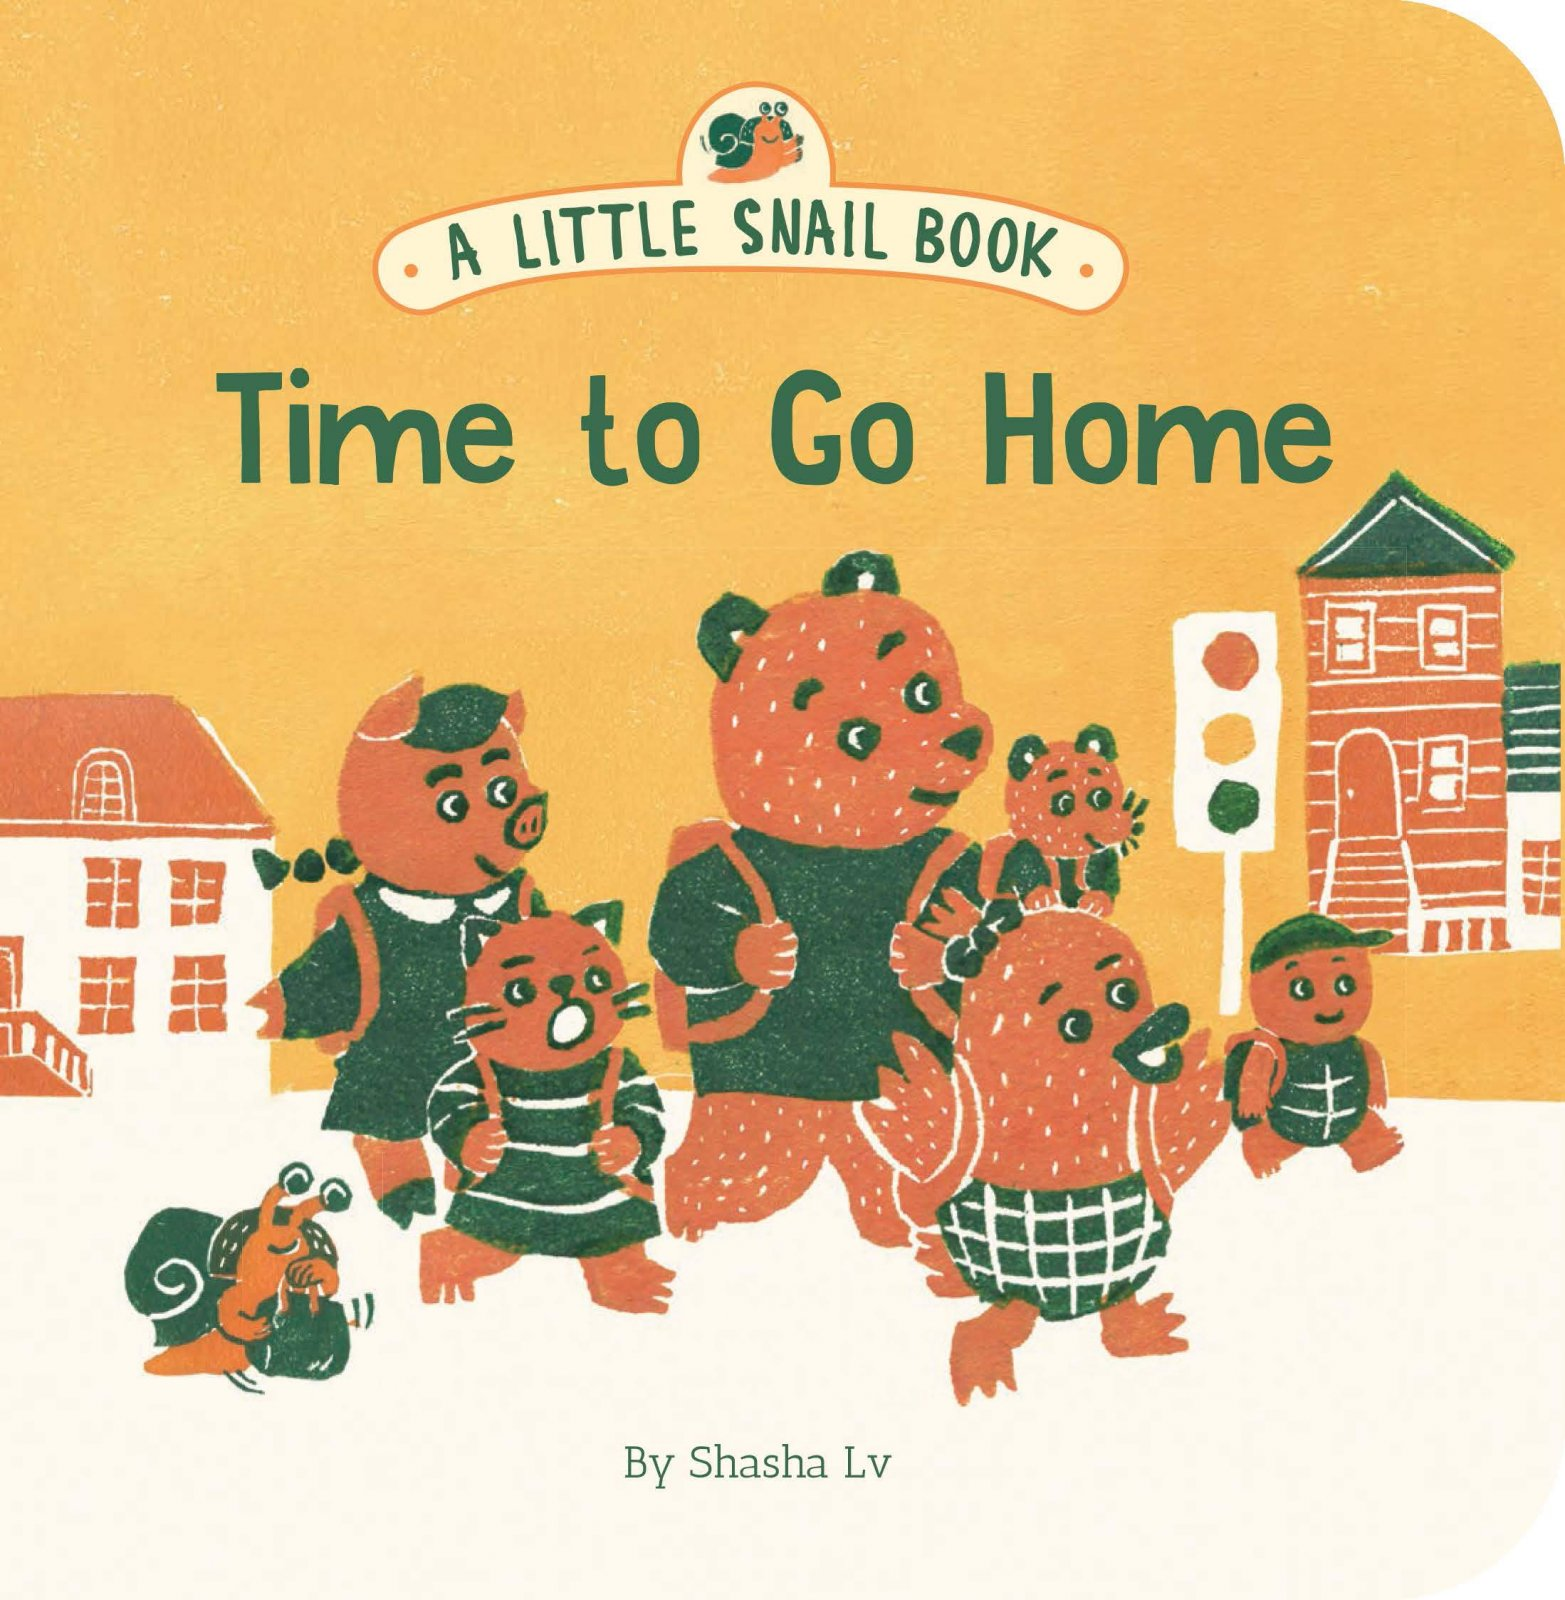 A Little Snail Book - Time to Go Home by Sasha Lv